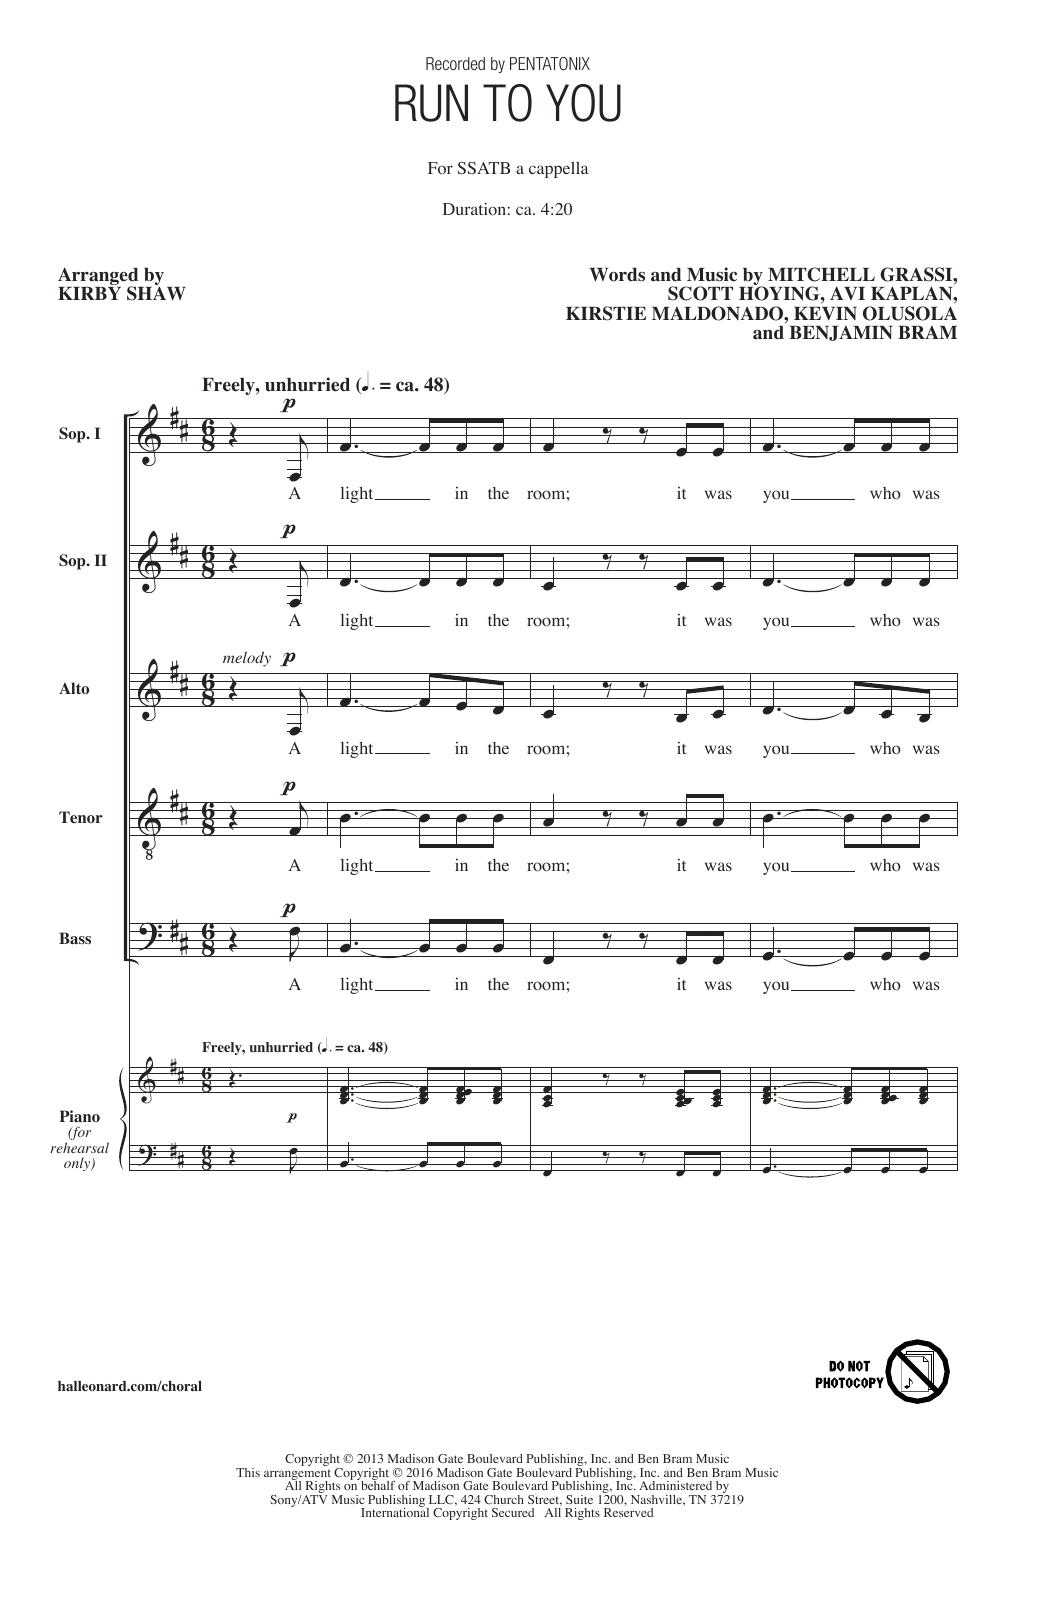 Pentatonix Run To You (arr. Kirby Shaw) sheet music notes and chords. Download Printable PDF.